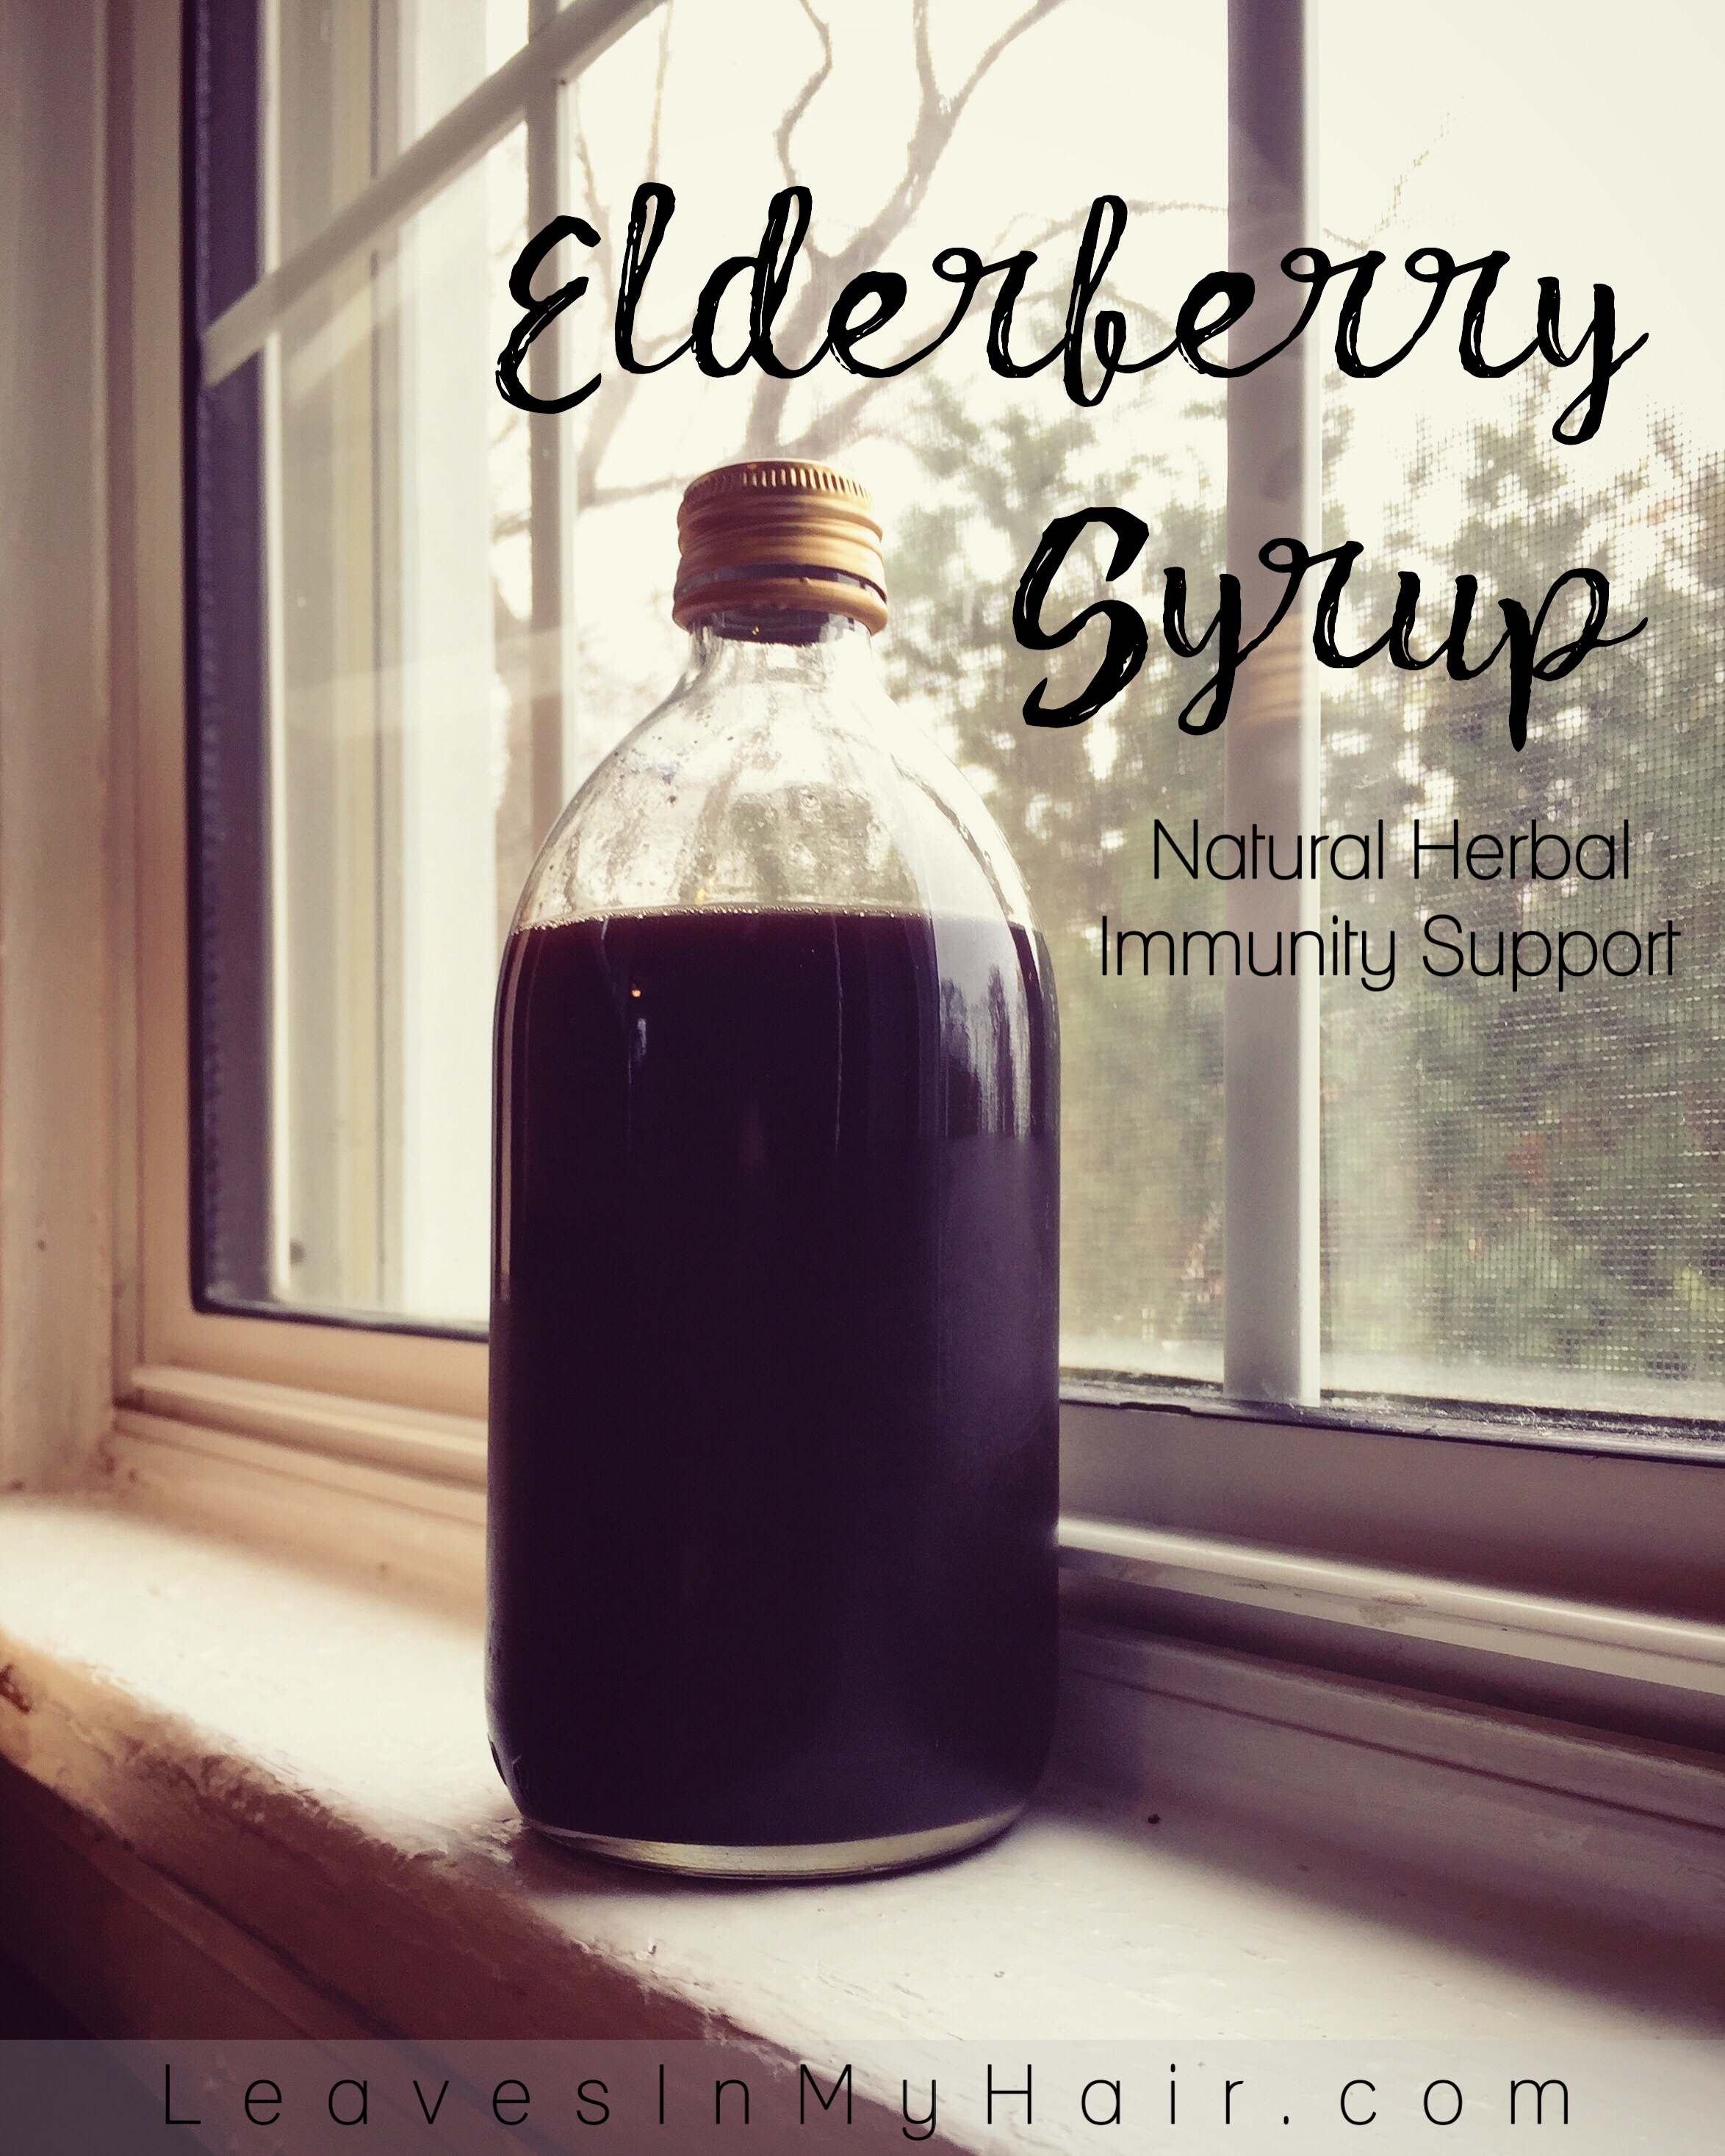 Elderberry Syrup: a Natural Herbal Immunity Support